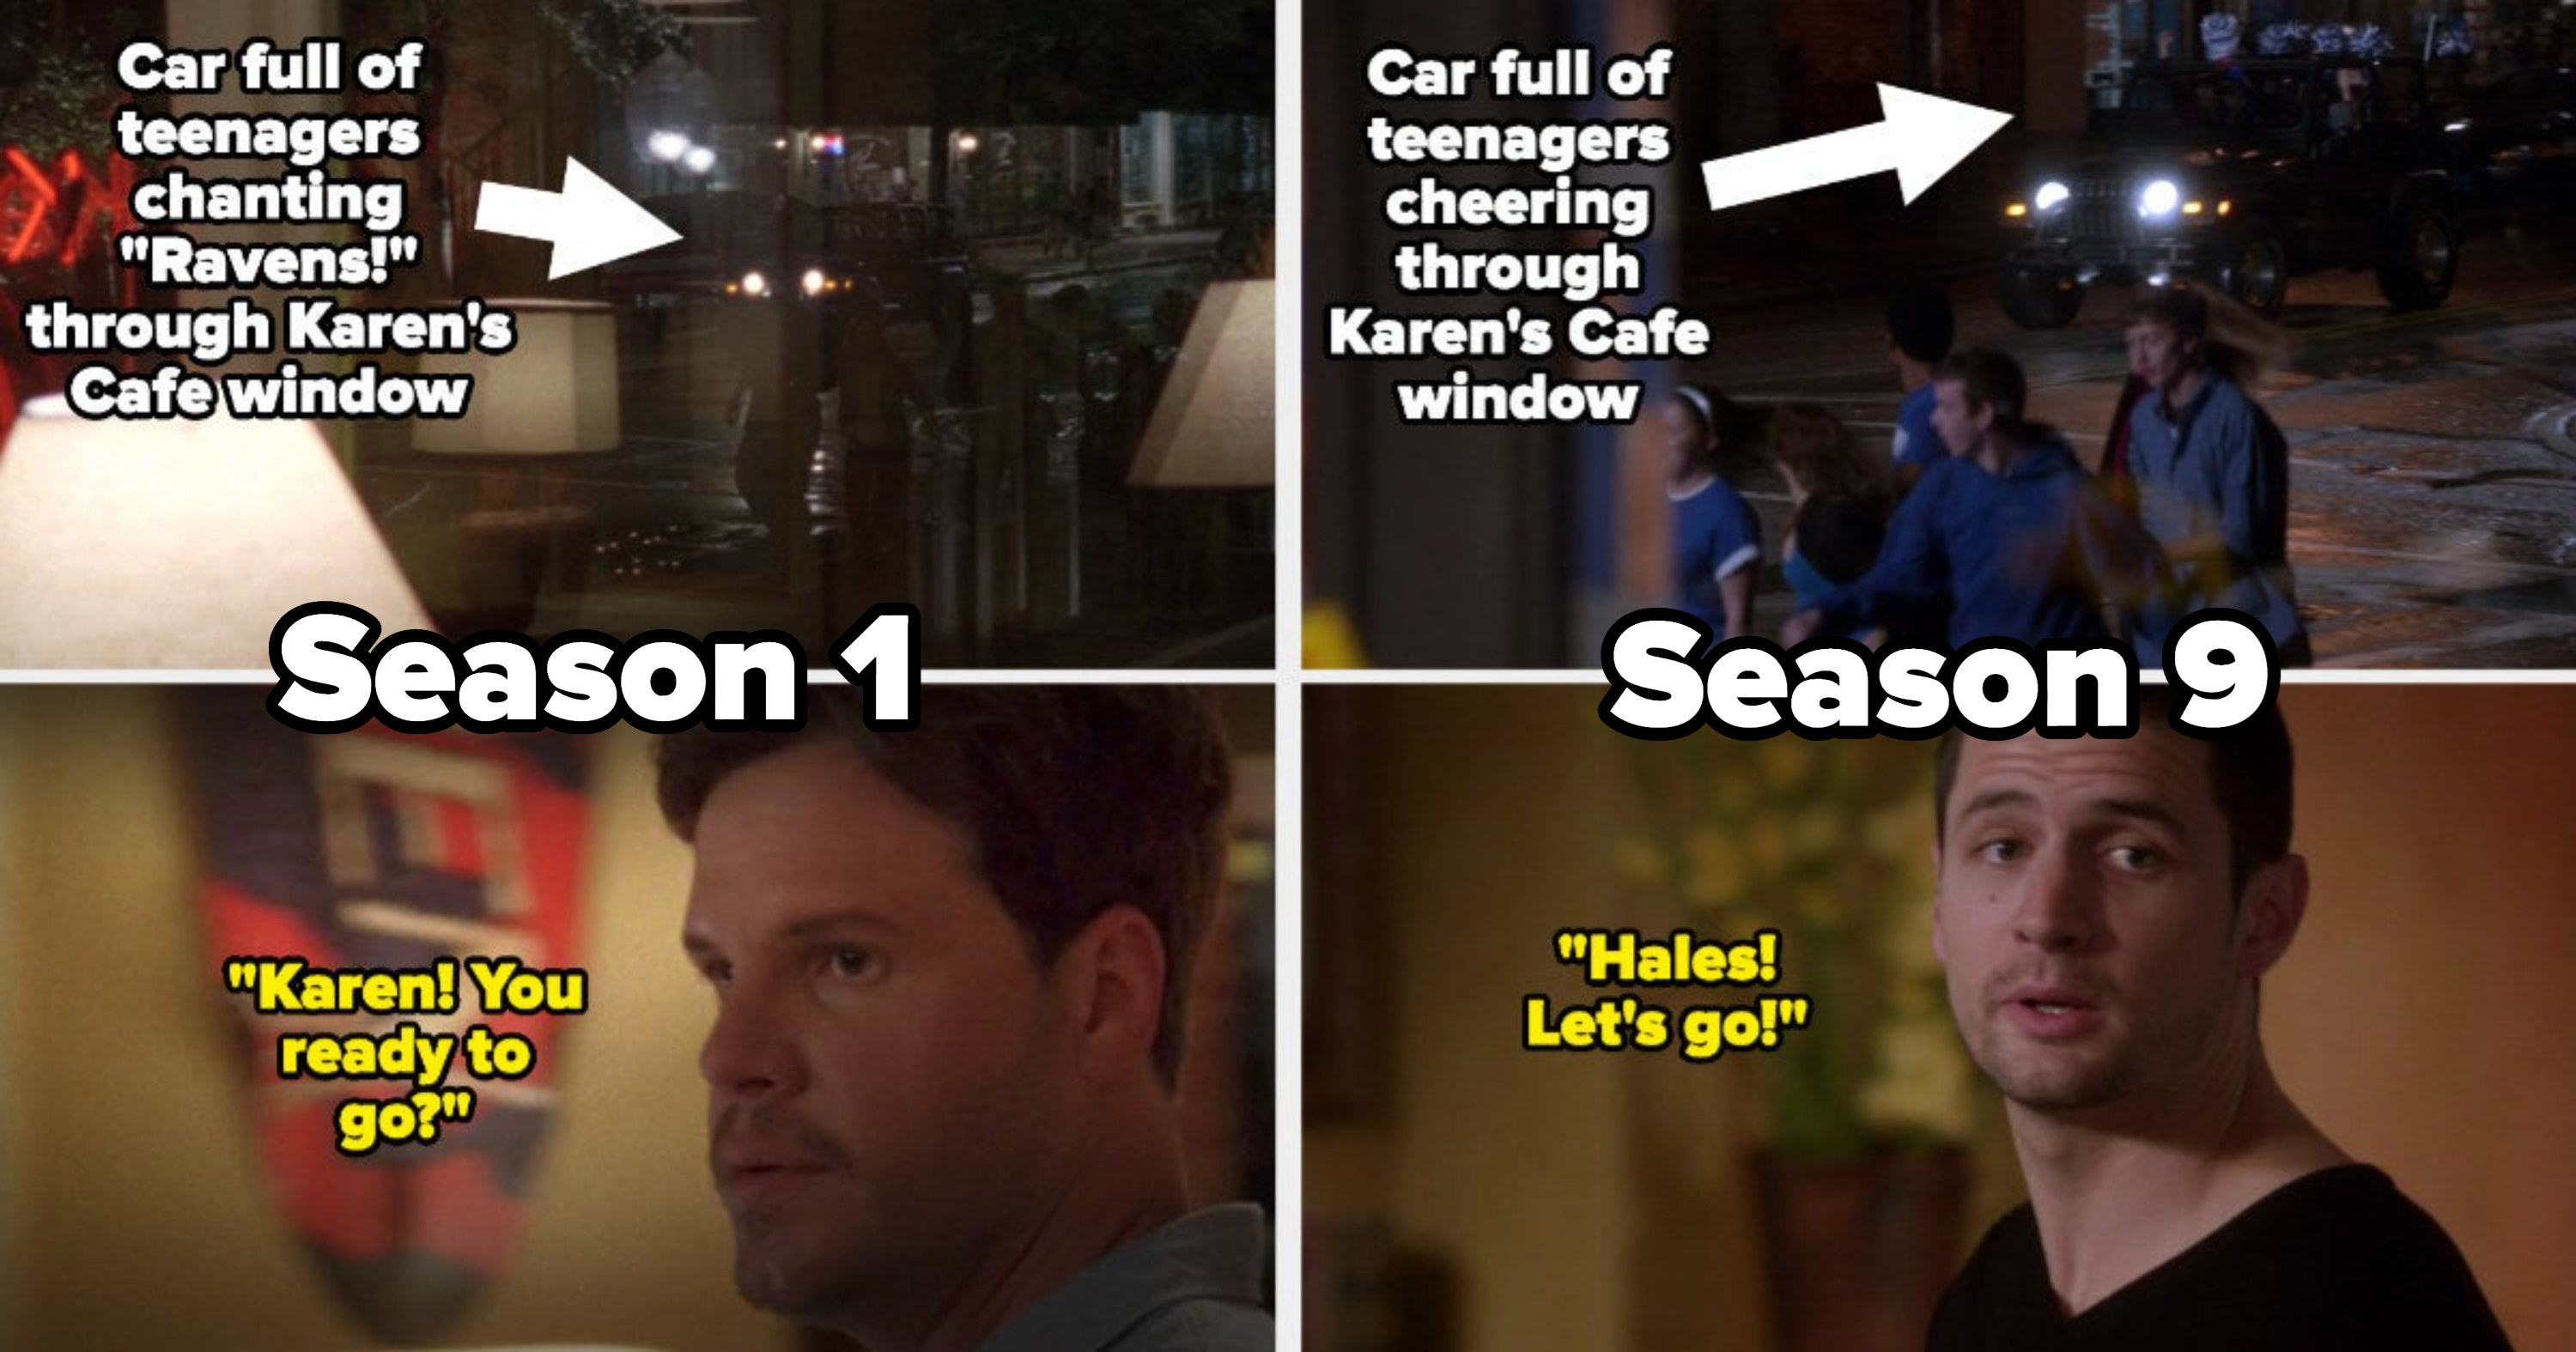 car full of teenagers chanting and cheering through Karen's Cafe's window, and then Keith (in Season 1) and Nathan (in Season 9) ask if Karen/Haley is ready to go